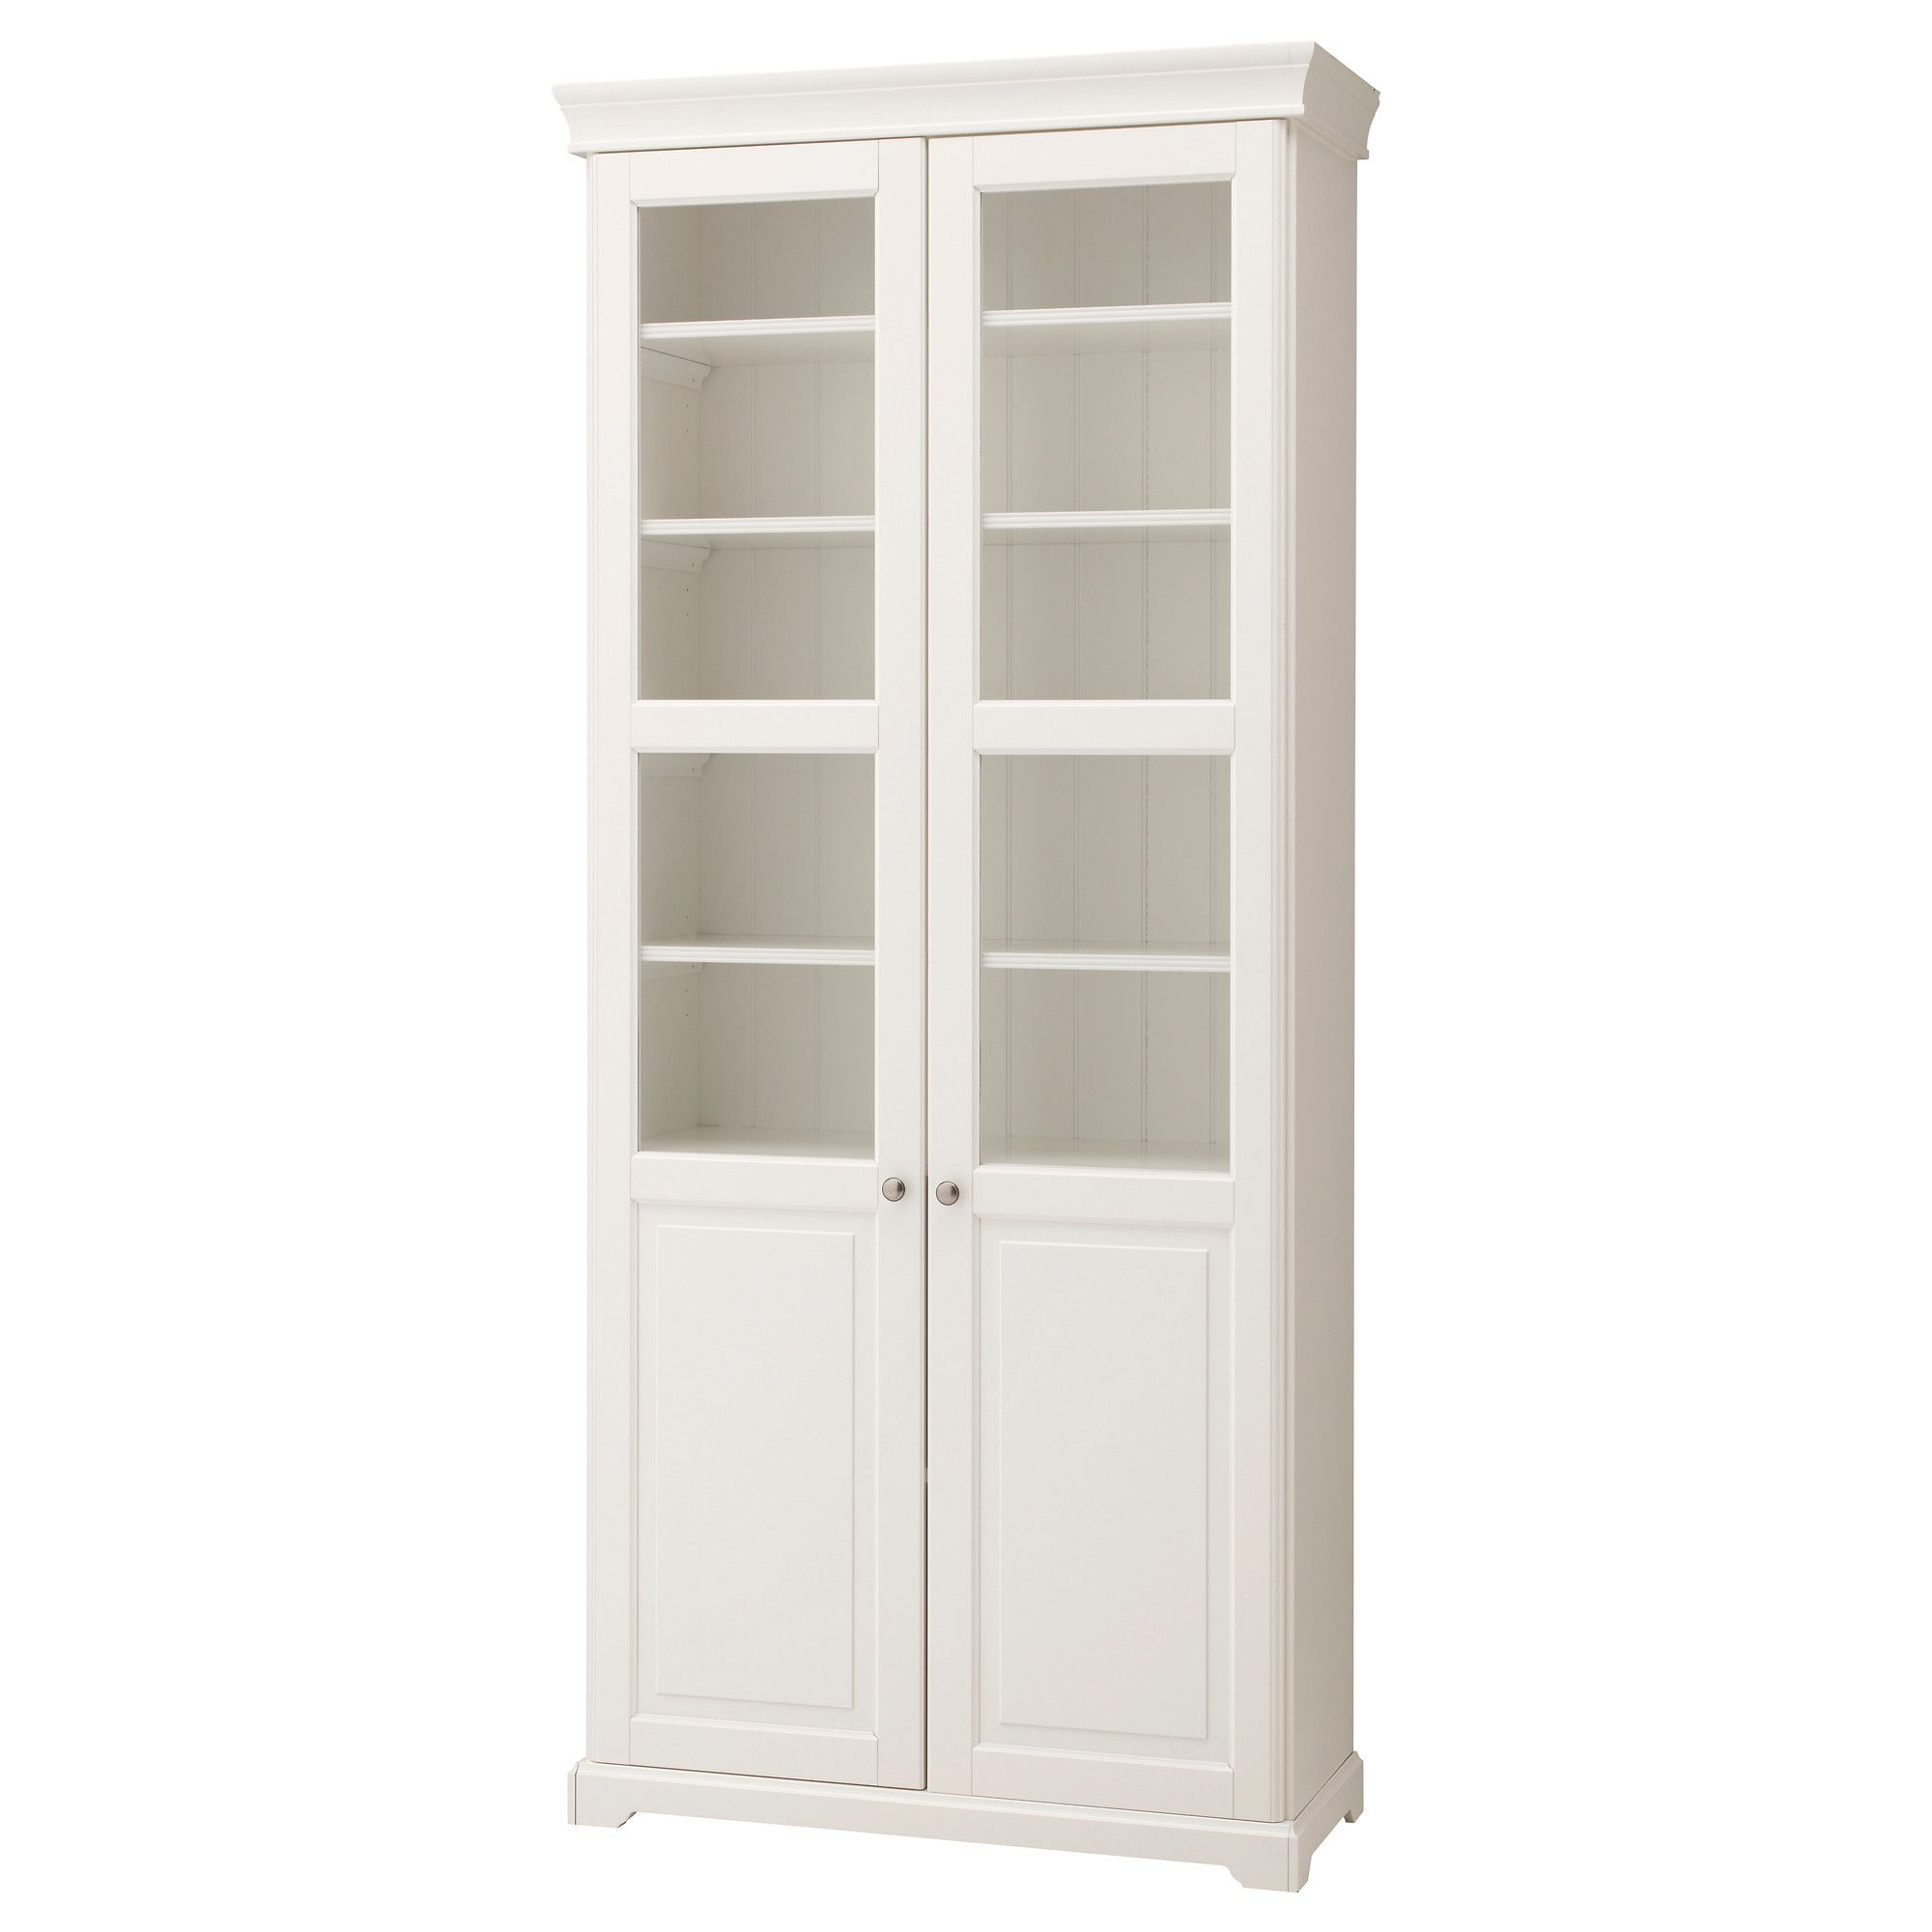 liatorp bookcase with glass doors white 37 3 4x84 1 4